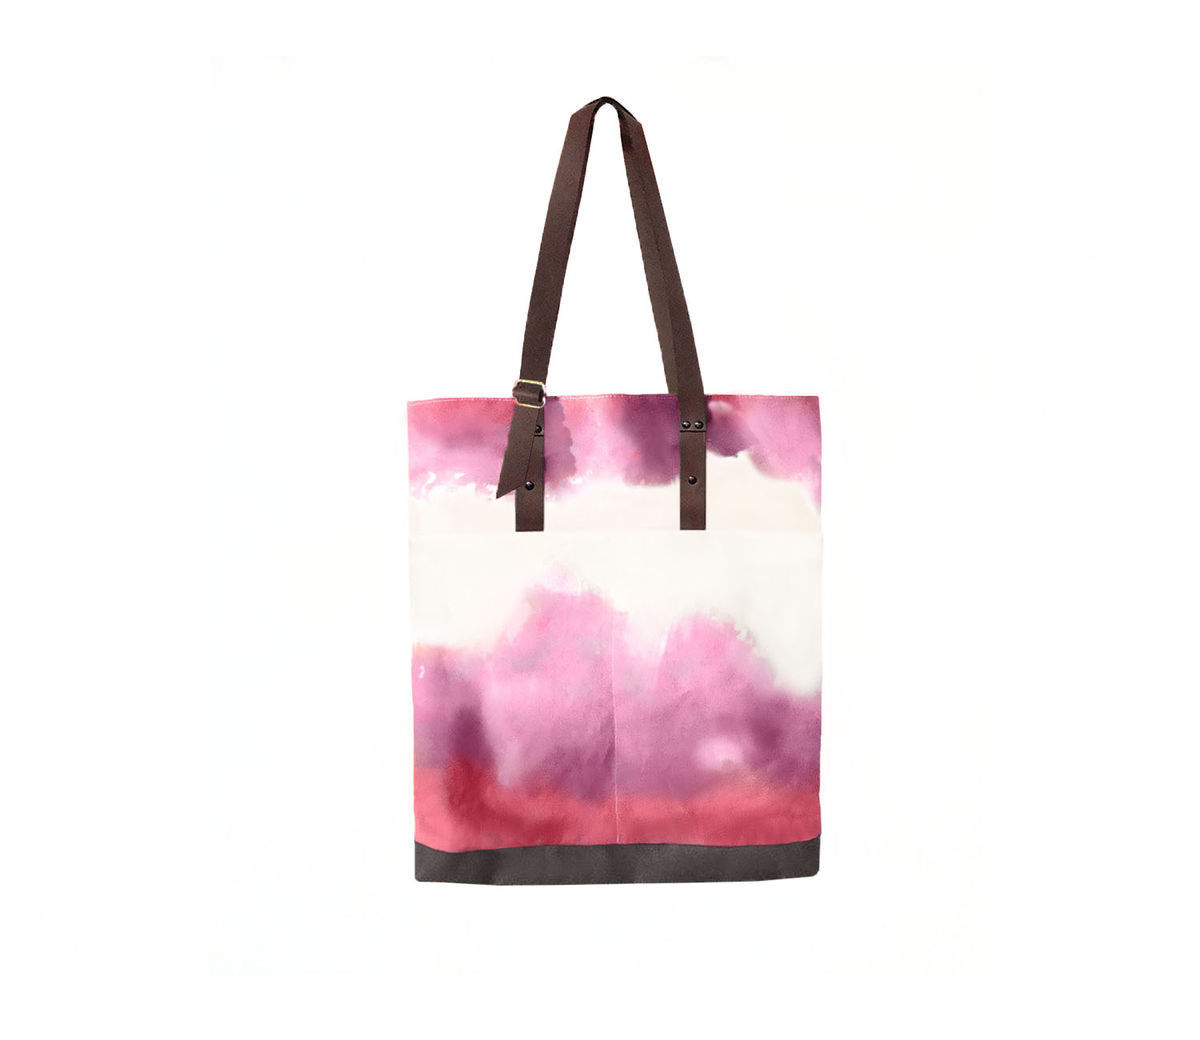 Quarters Pocket Tote, Hand Dyed Fuscia, Waxed Canvas and Leather - product images  of